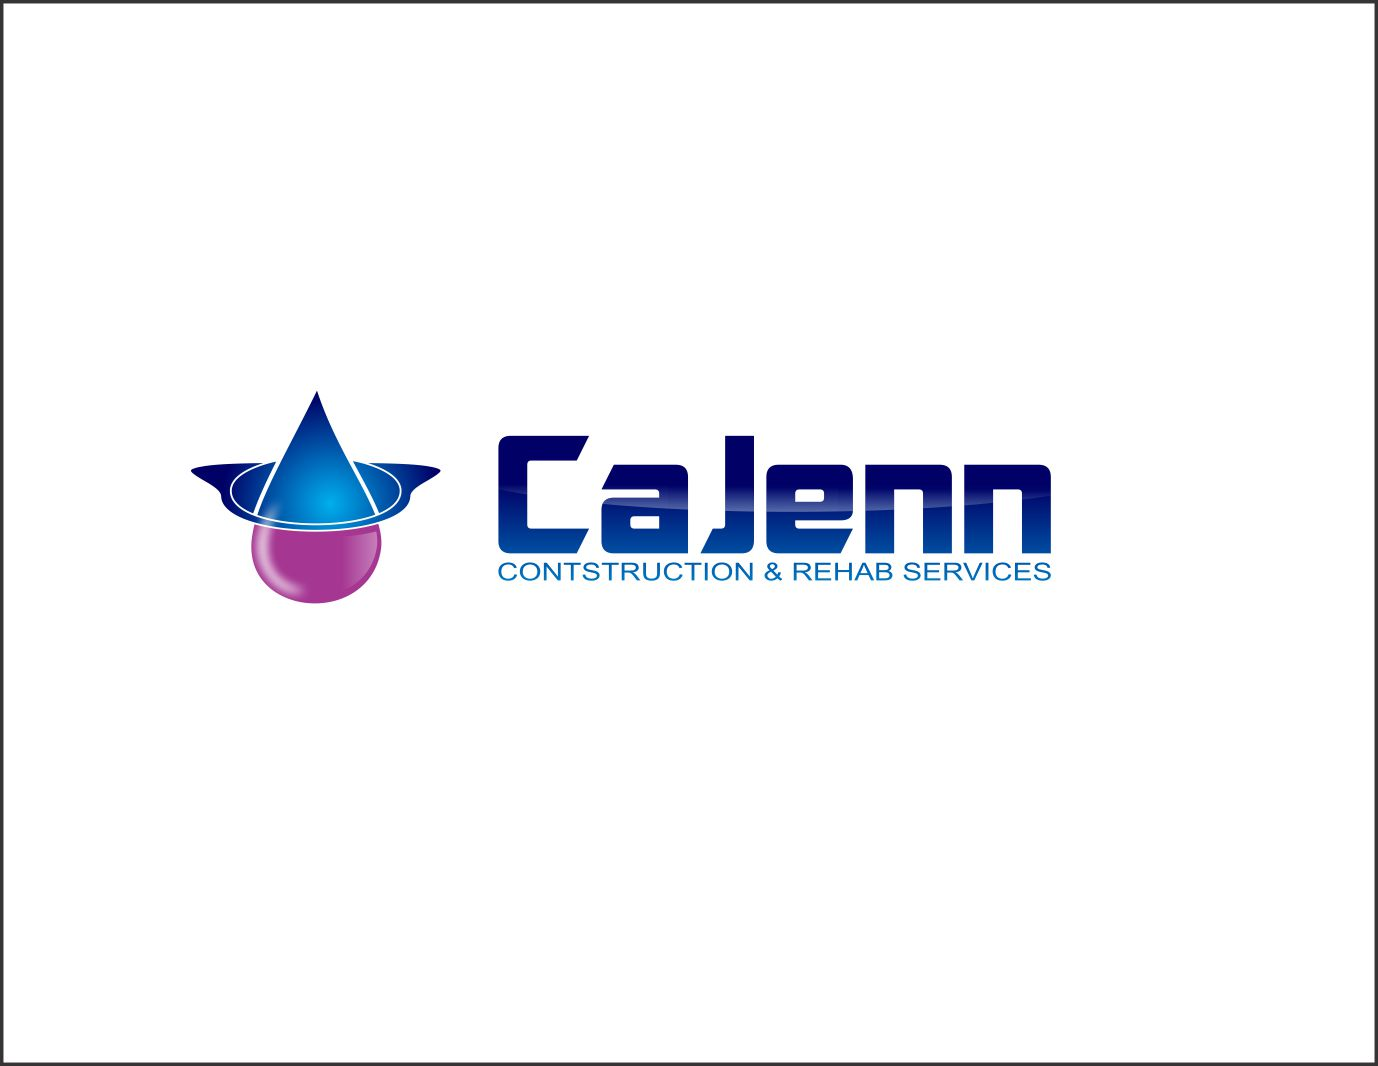 Logo Design by Agus Martoyo - Entry No. 222 in the Logo Design Contest New Logo Design for CaJenn Construction & Rehab Services.